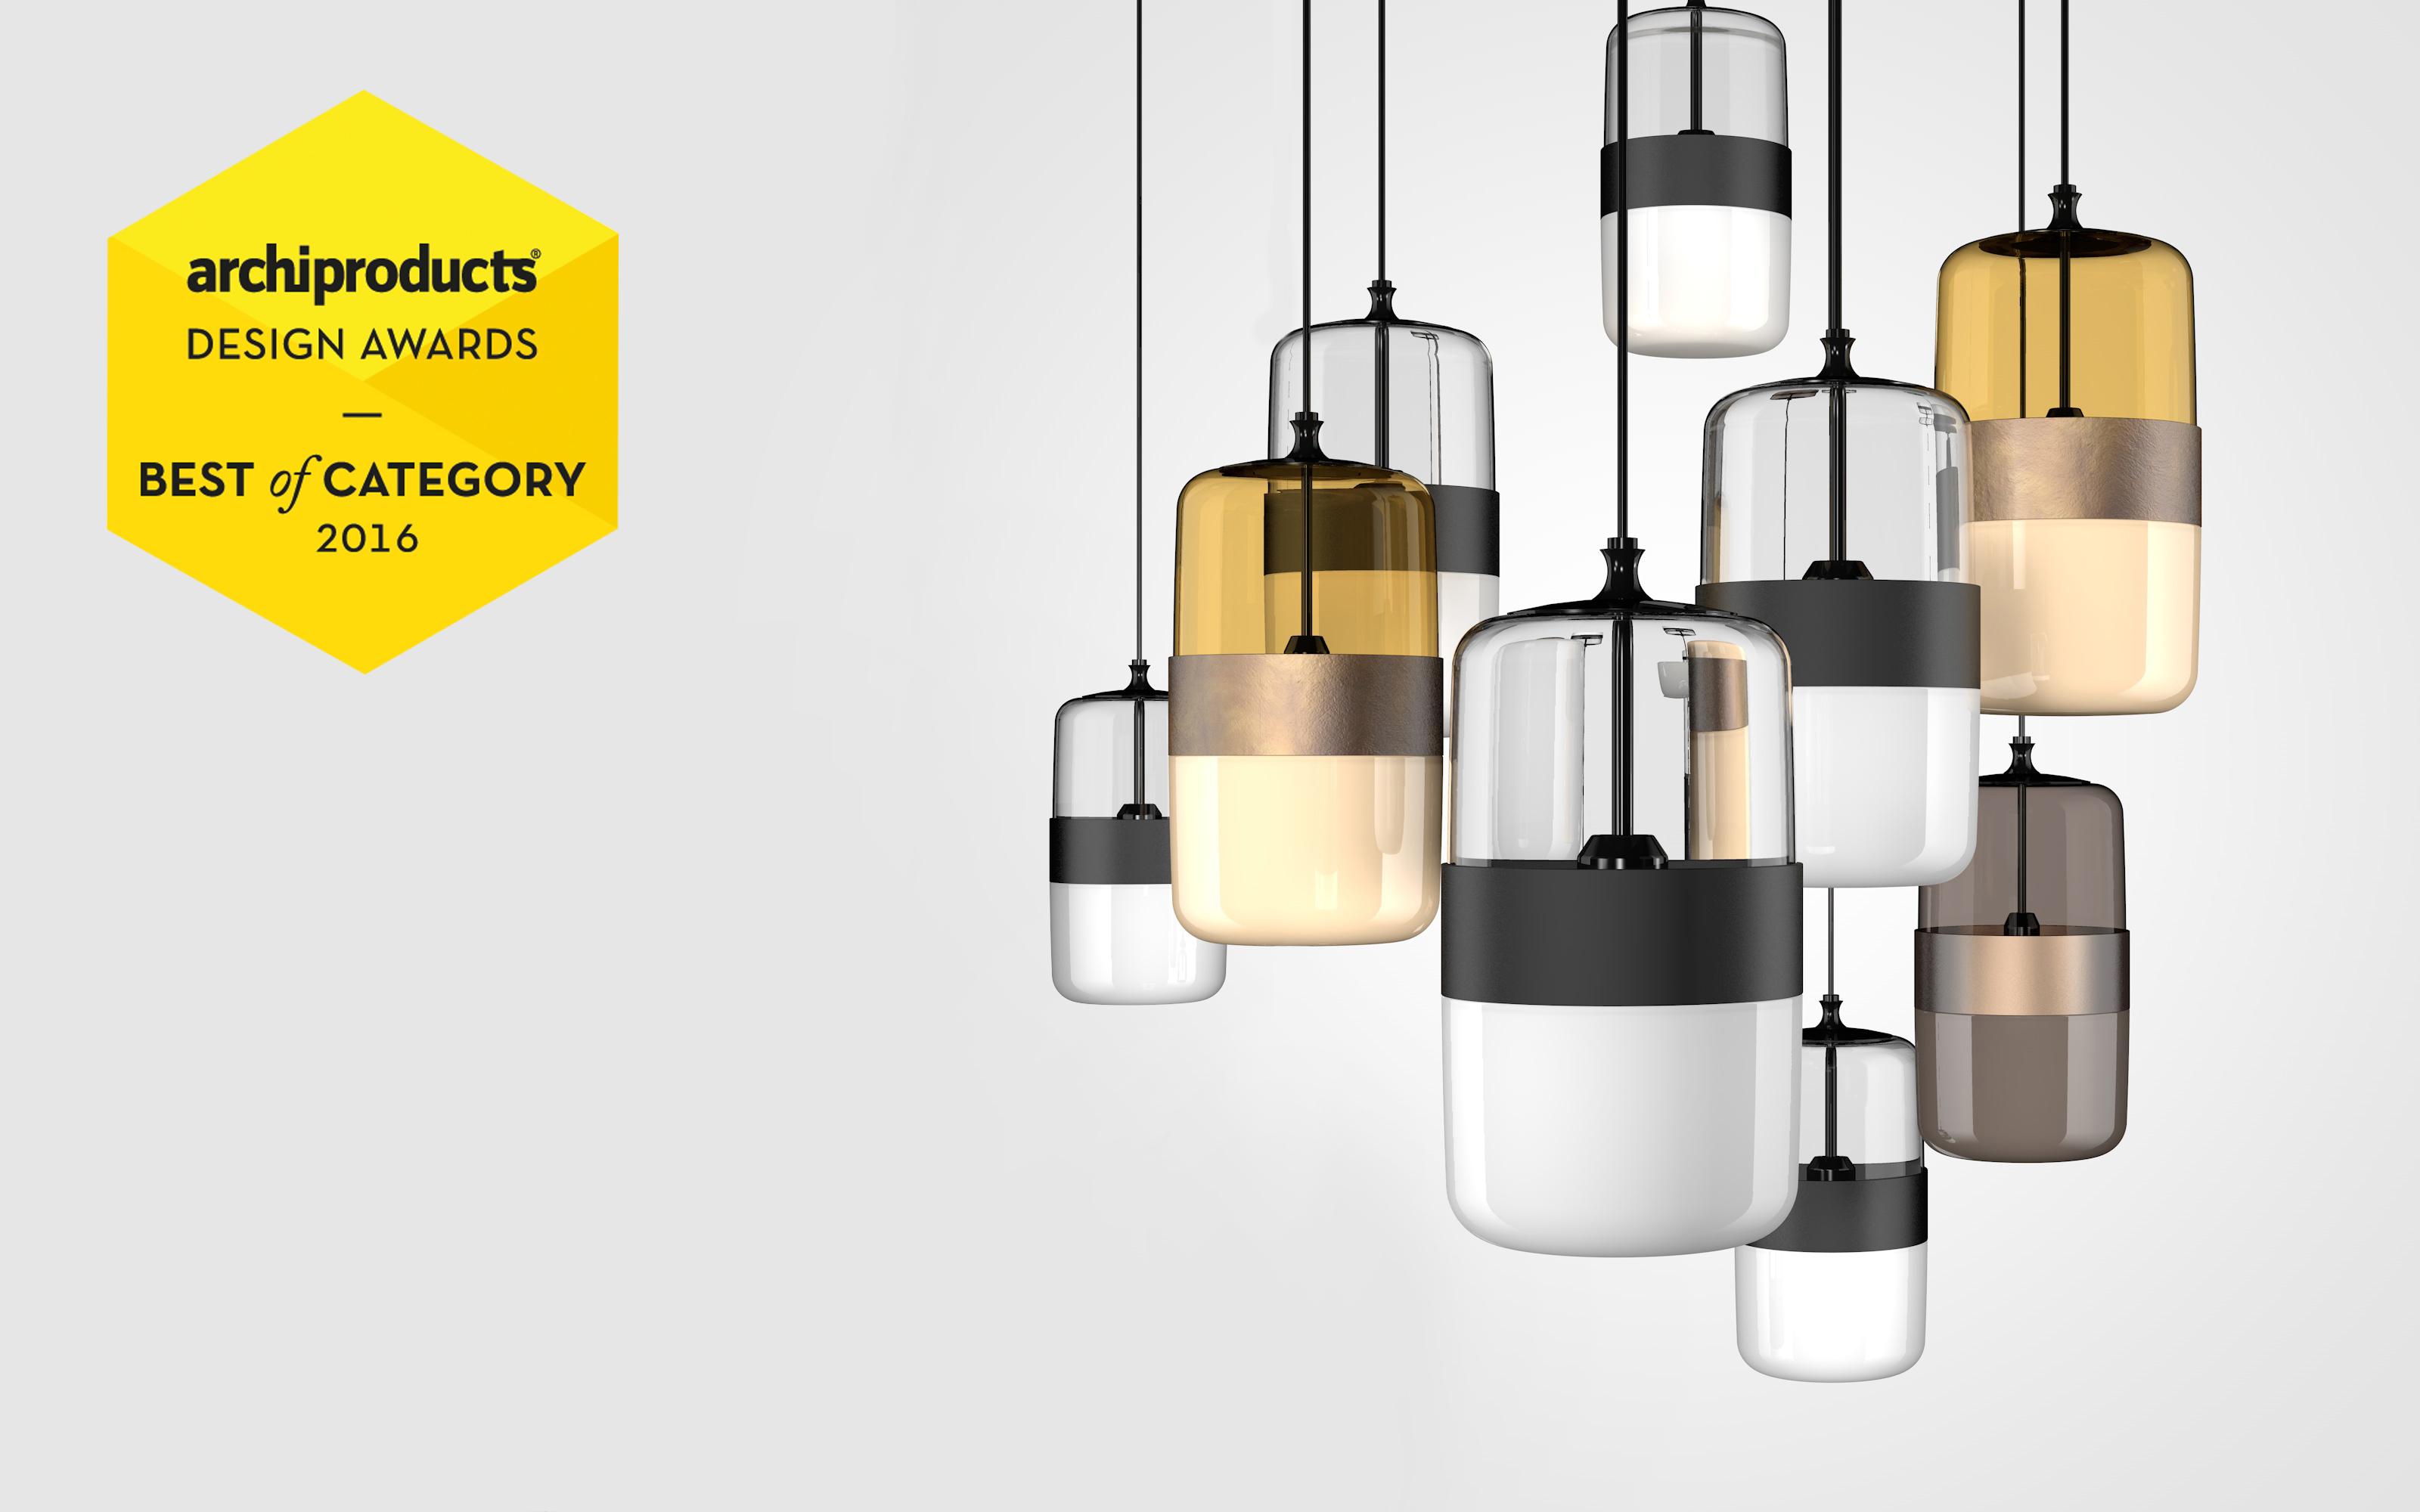 Futura at Archiproducts Design Awards is Best of 2016